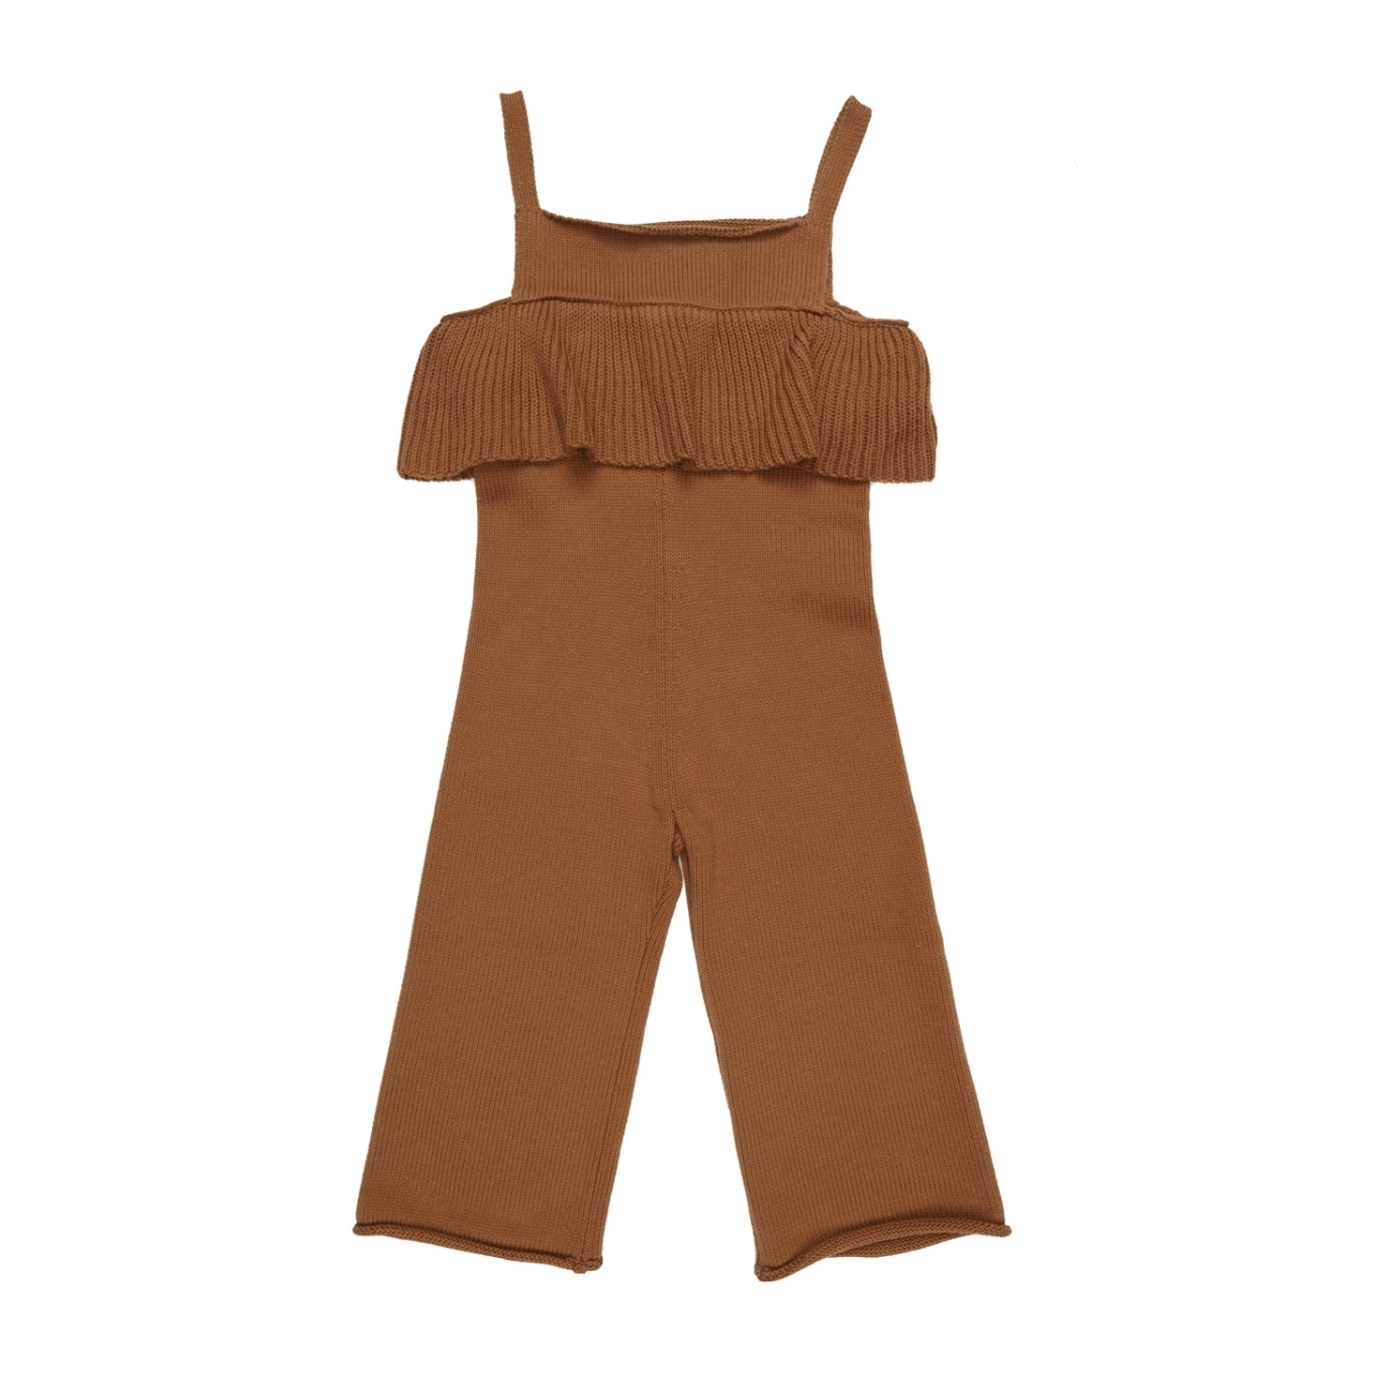 Maed for mini Knit Jumpsuit Busy Bear Brown